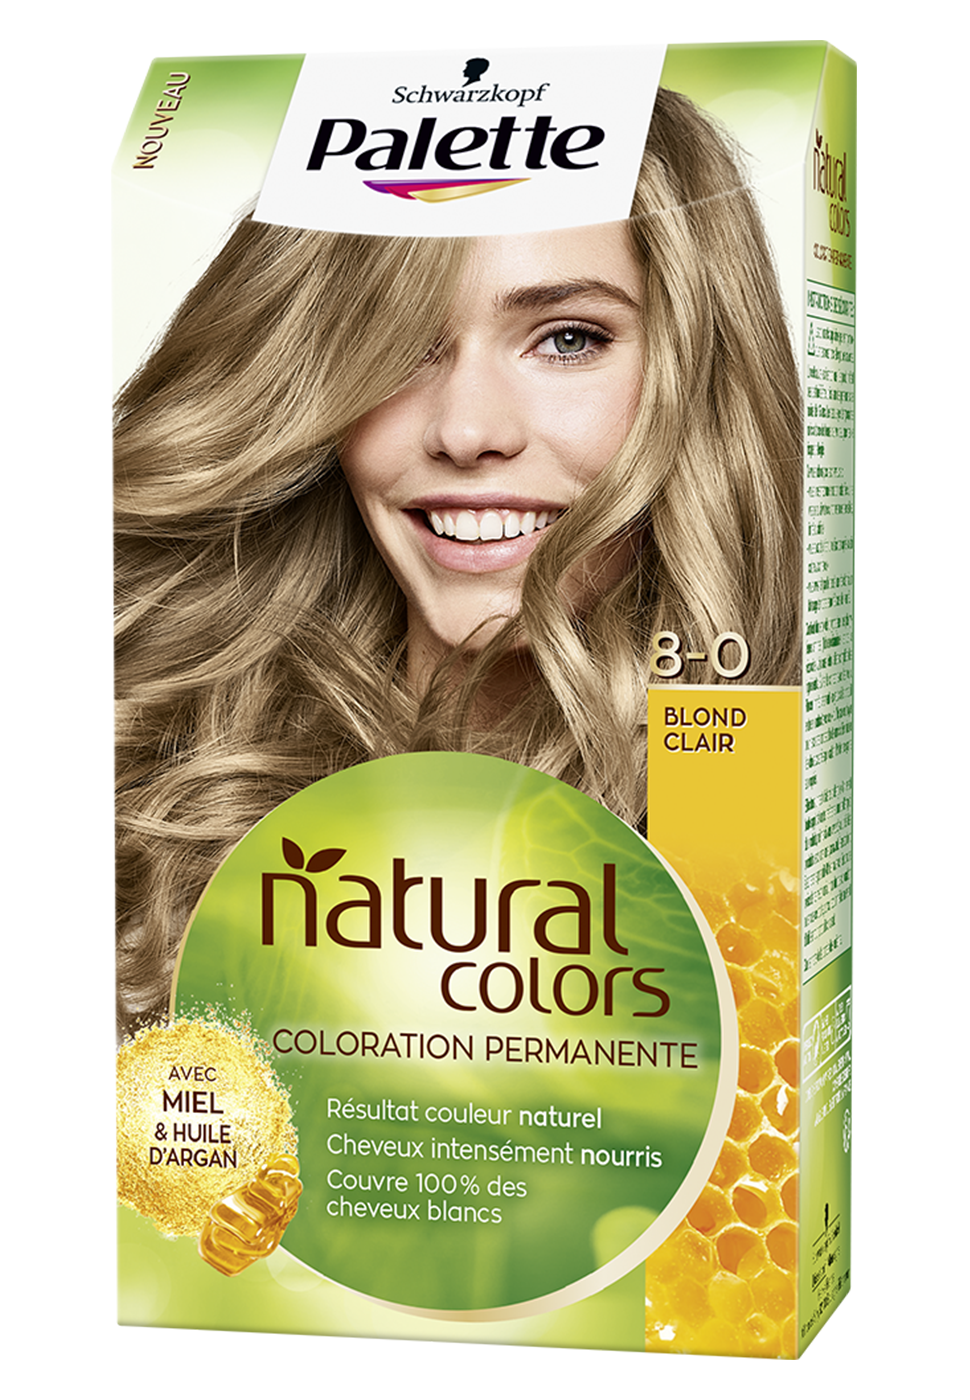 palette-natural-colors-8-0-blond-clair